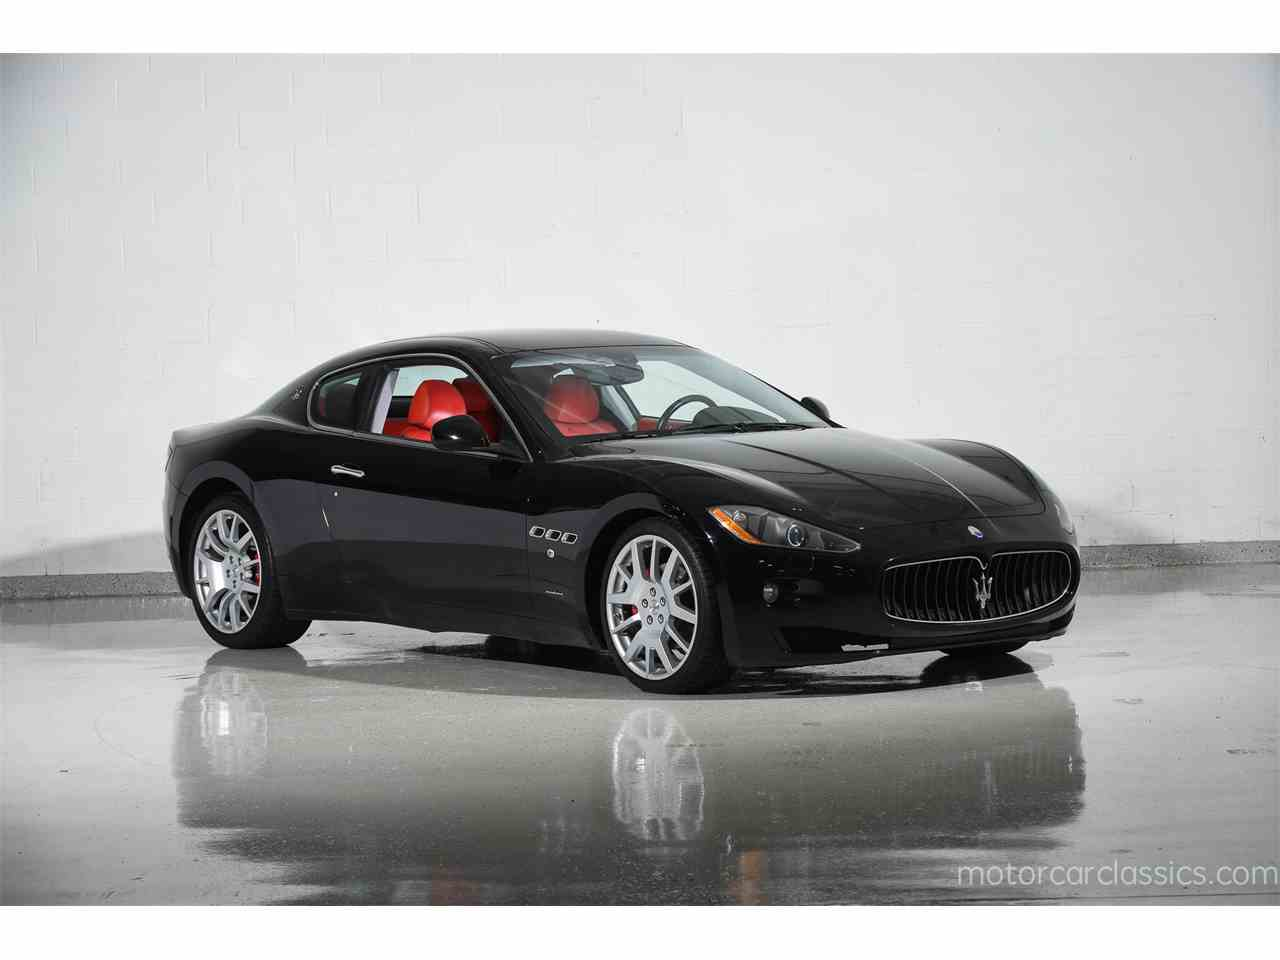 Large Picture of 2008 GranTurismo located in Farmingdale New York - $41,900.00 - MBOP